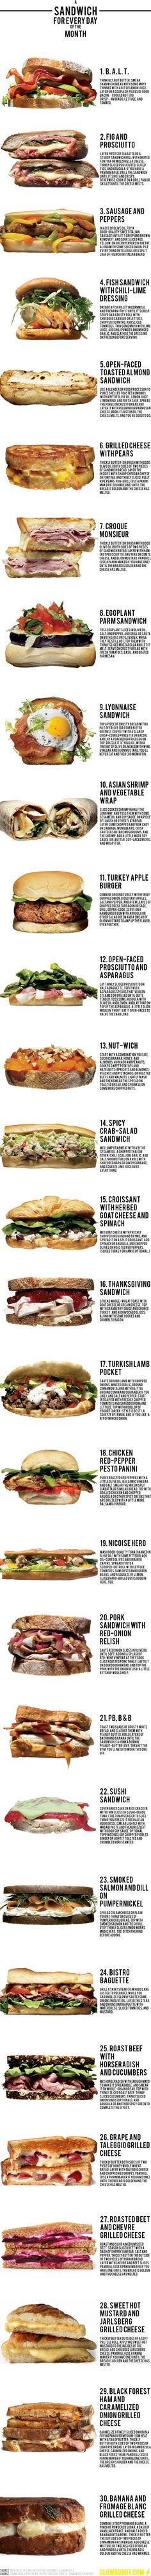 """""""A New Sandwich for Every Day of the Month"""" by slowrobot. Sources: menshealth and chow: Each one yummy and just a little surprising!   #Infographic #Sandwiches"""